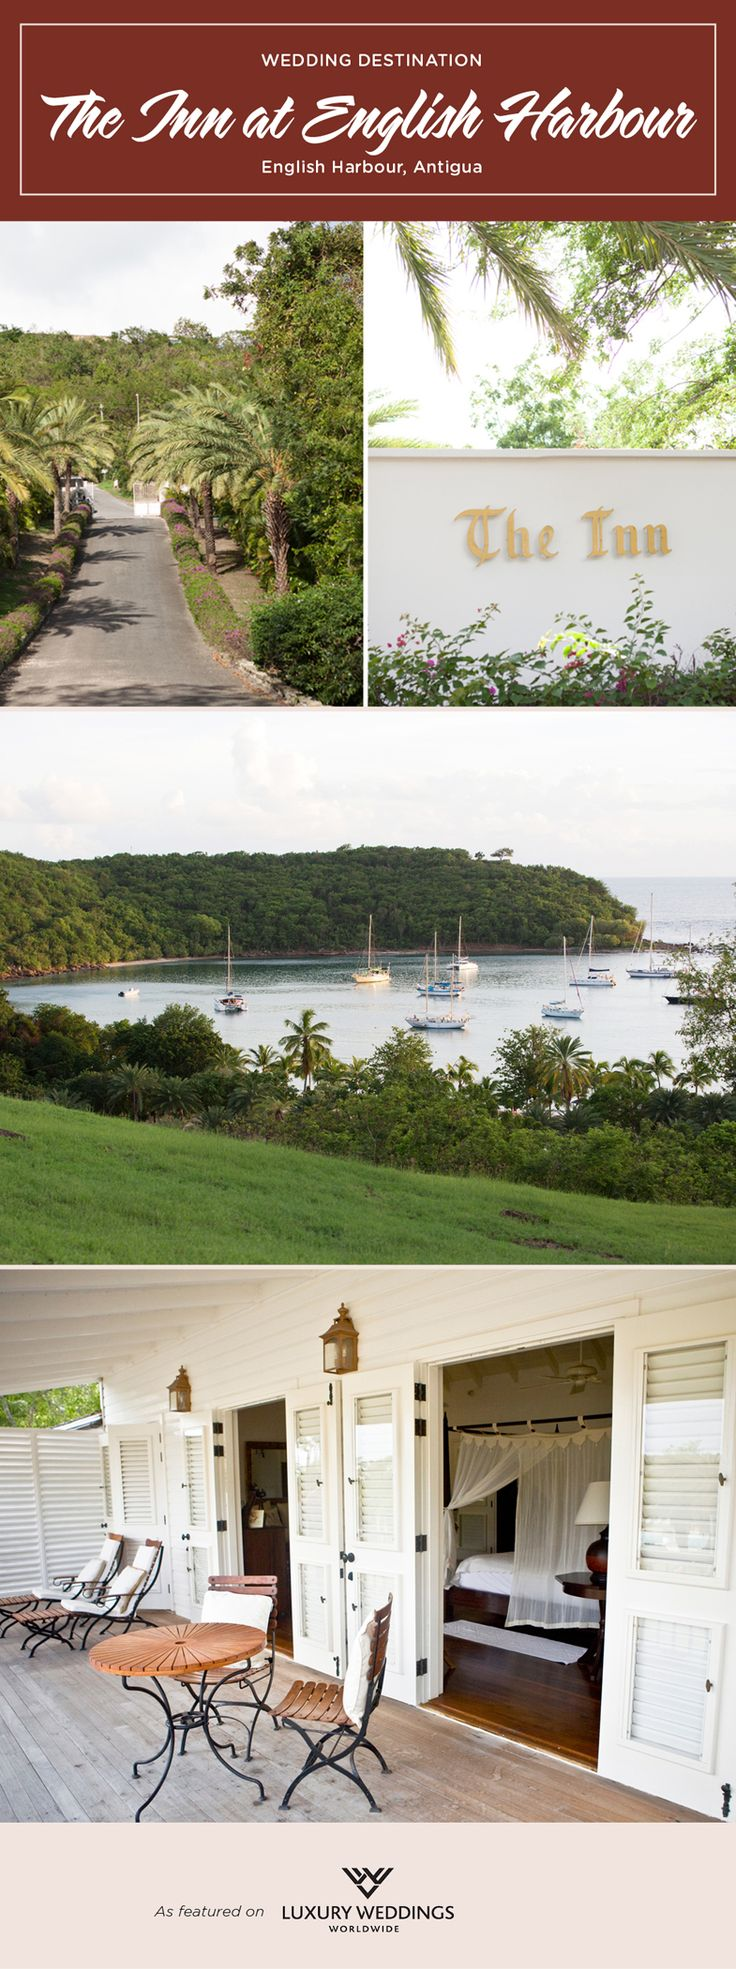 Scenic yet secluded, perfect for private weddings and honeymoons. The Inn at English Harbour delivers.   Antigua wedding, destination wedding, old world charm, classic villa, wedding location, honeymoon destination.